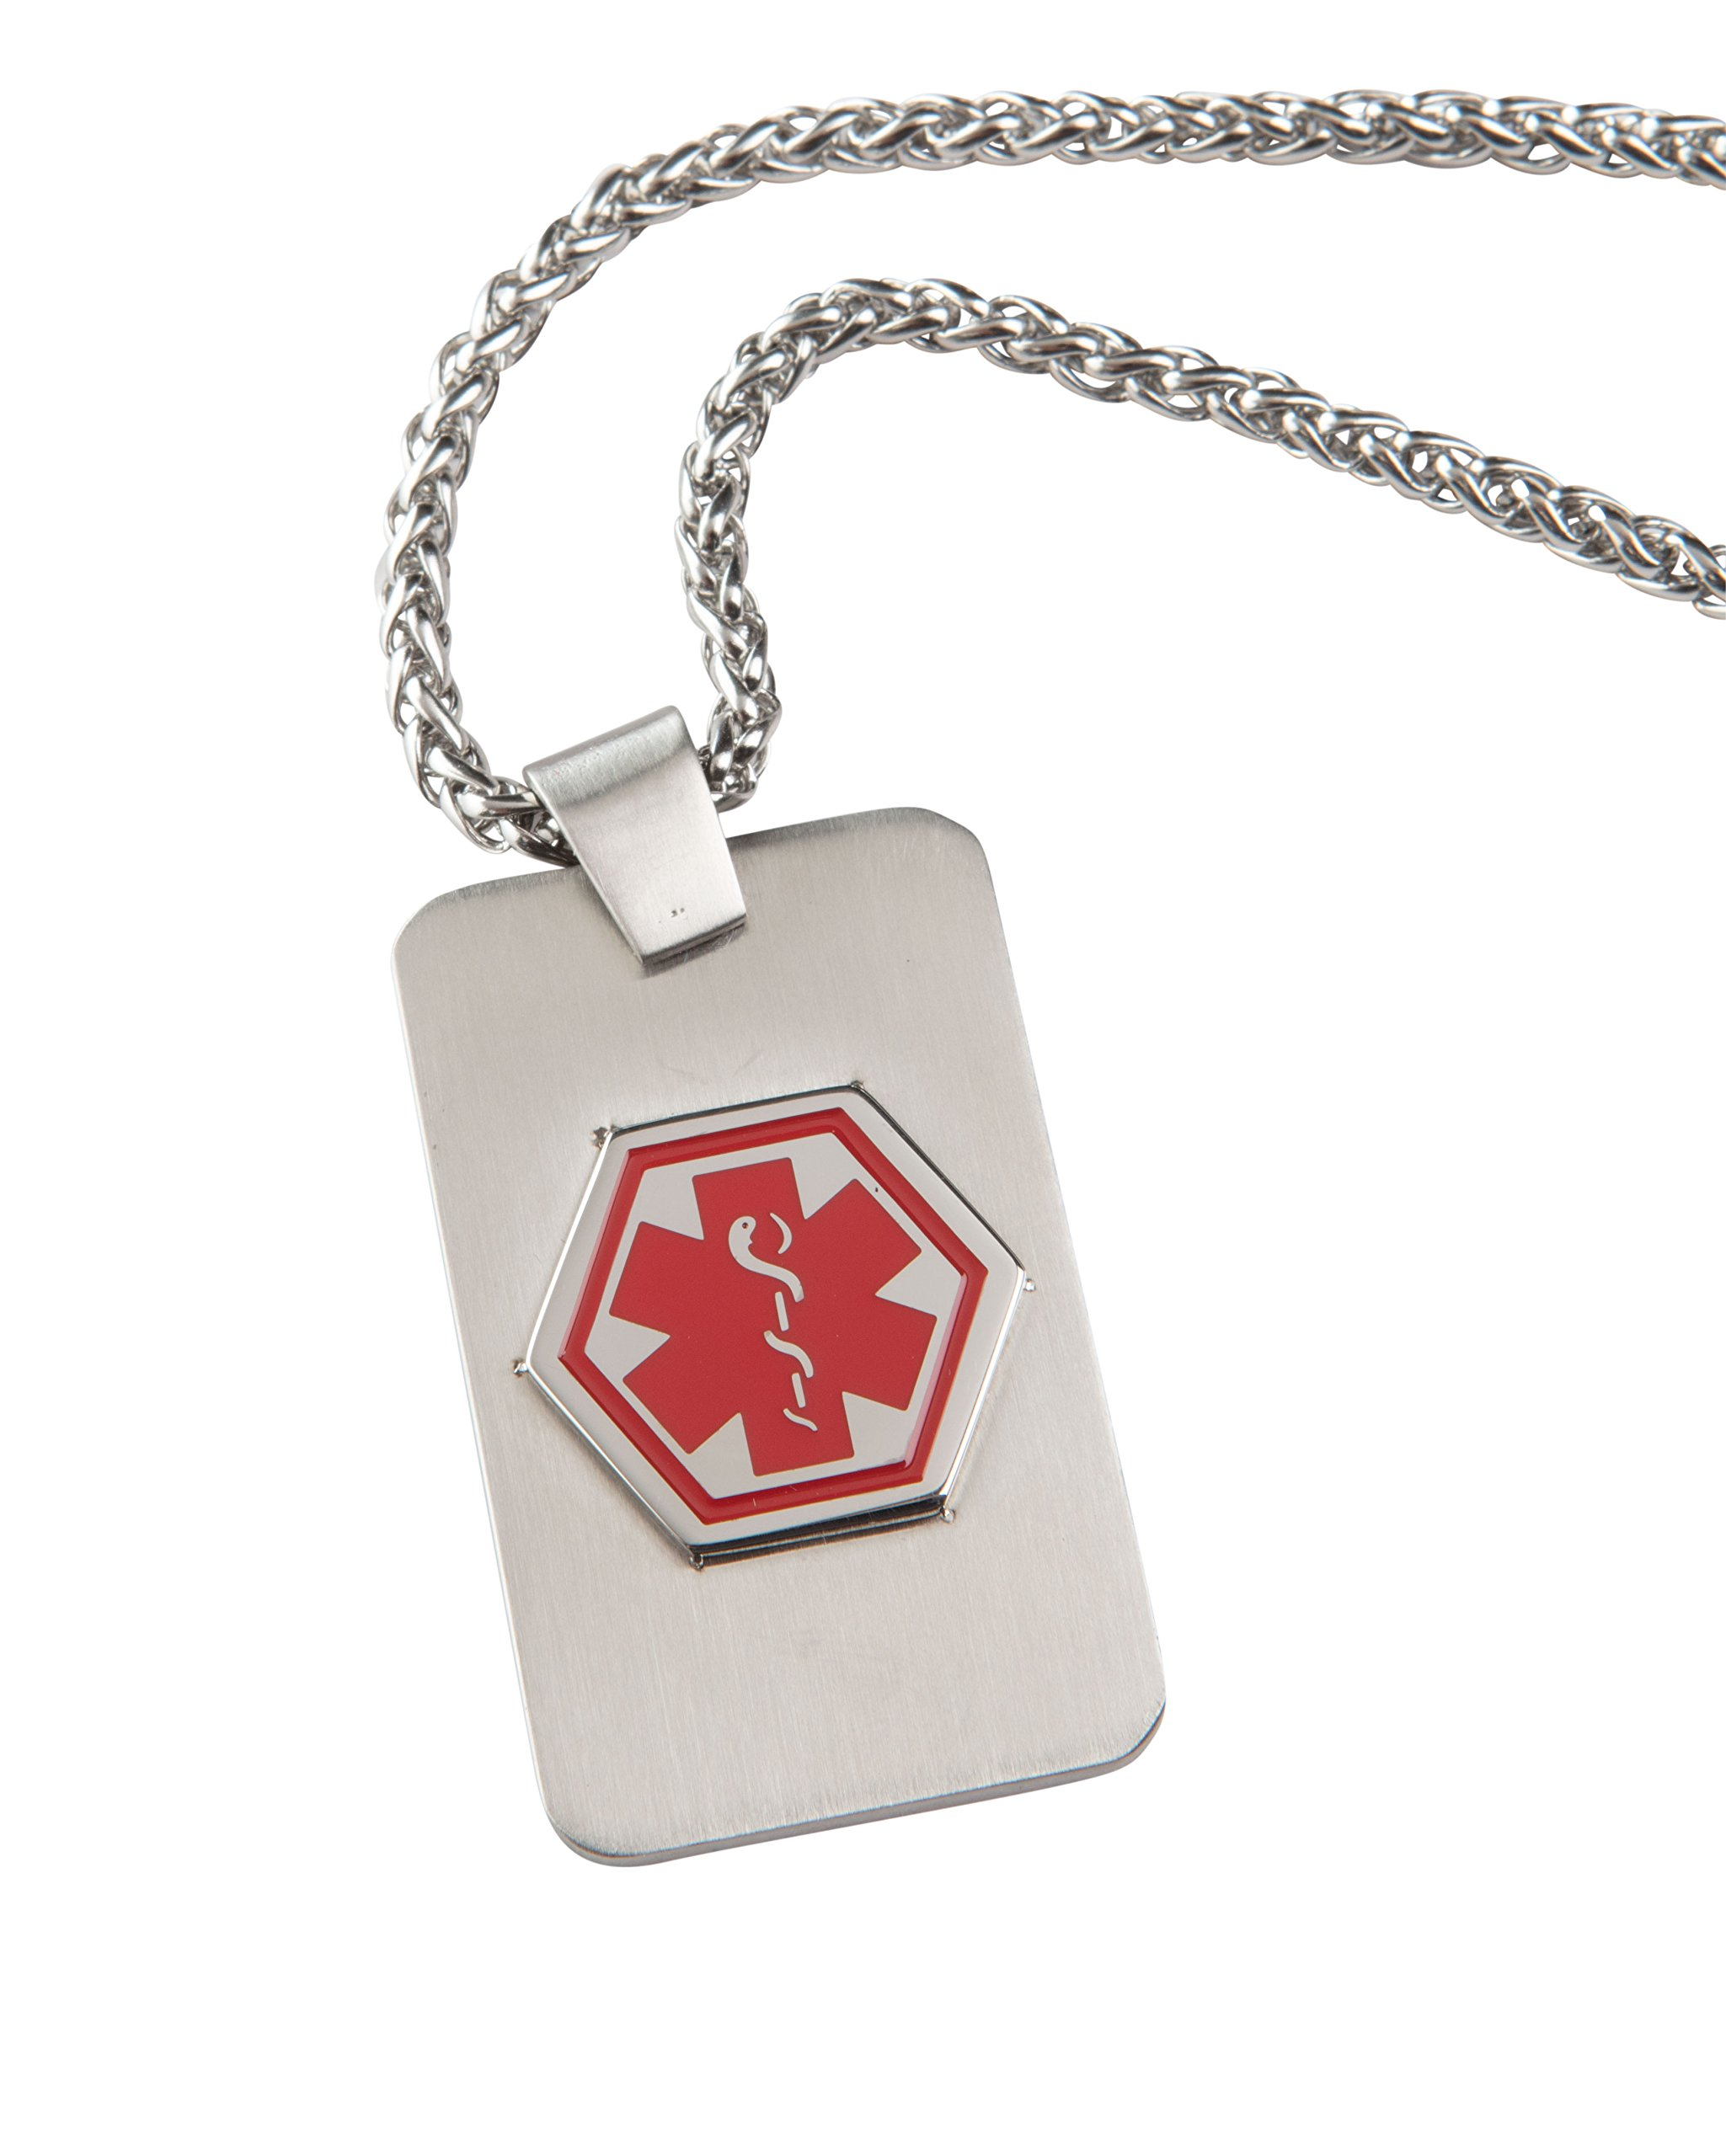 My Conditions Med ID Necklace by Sabona (Image #1)